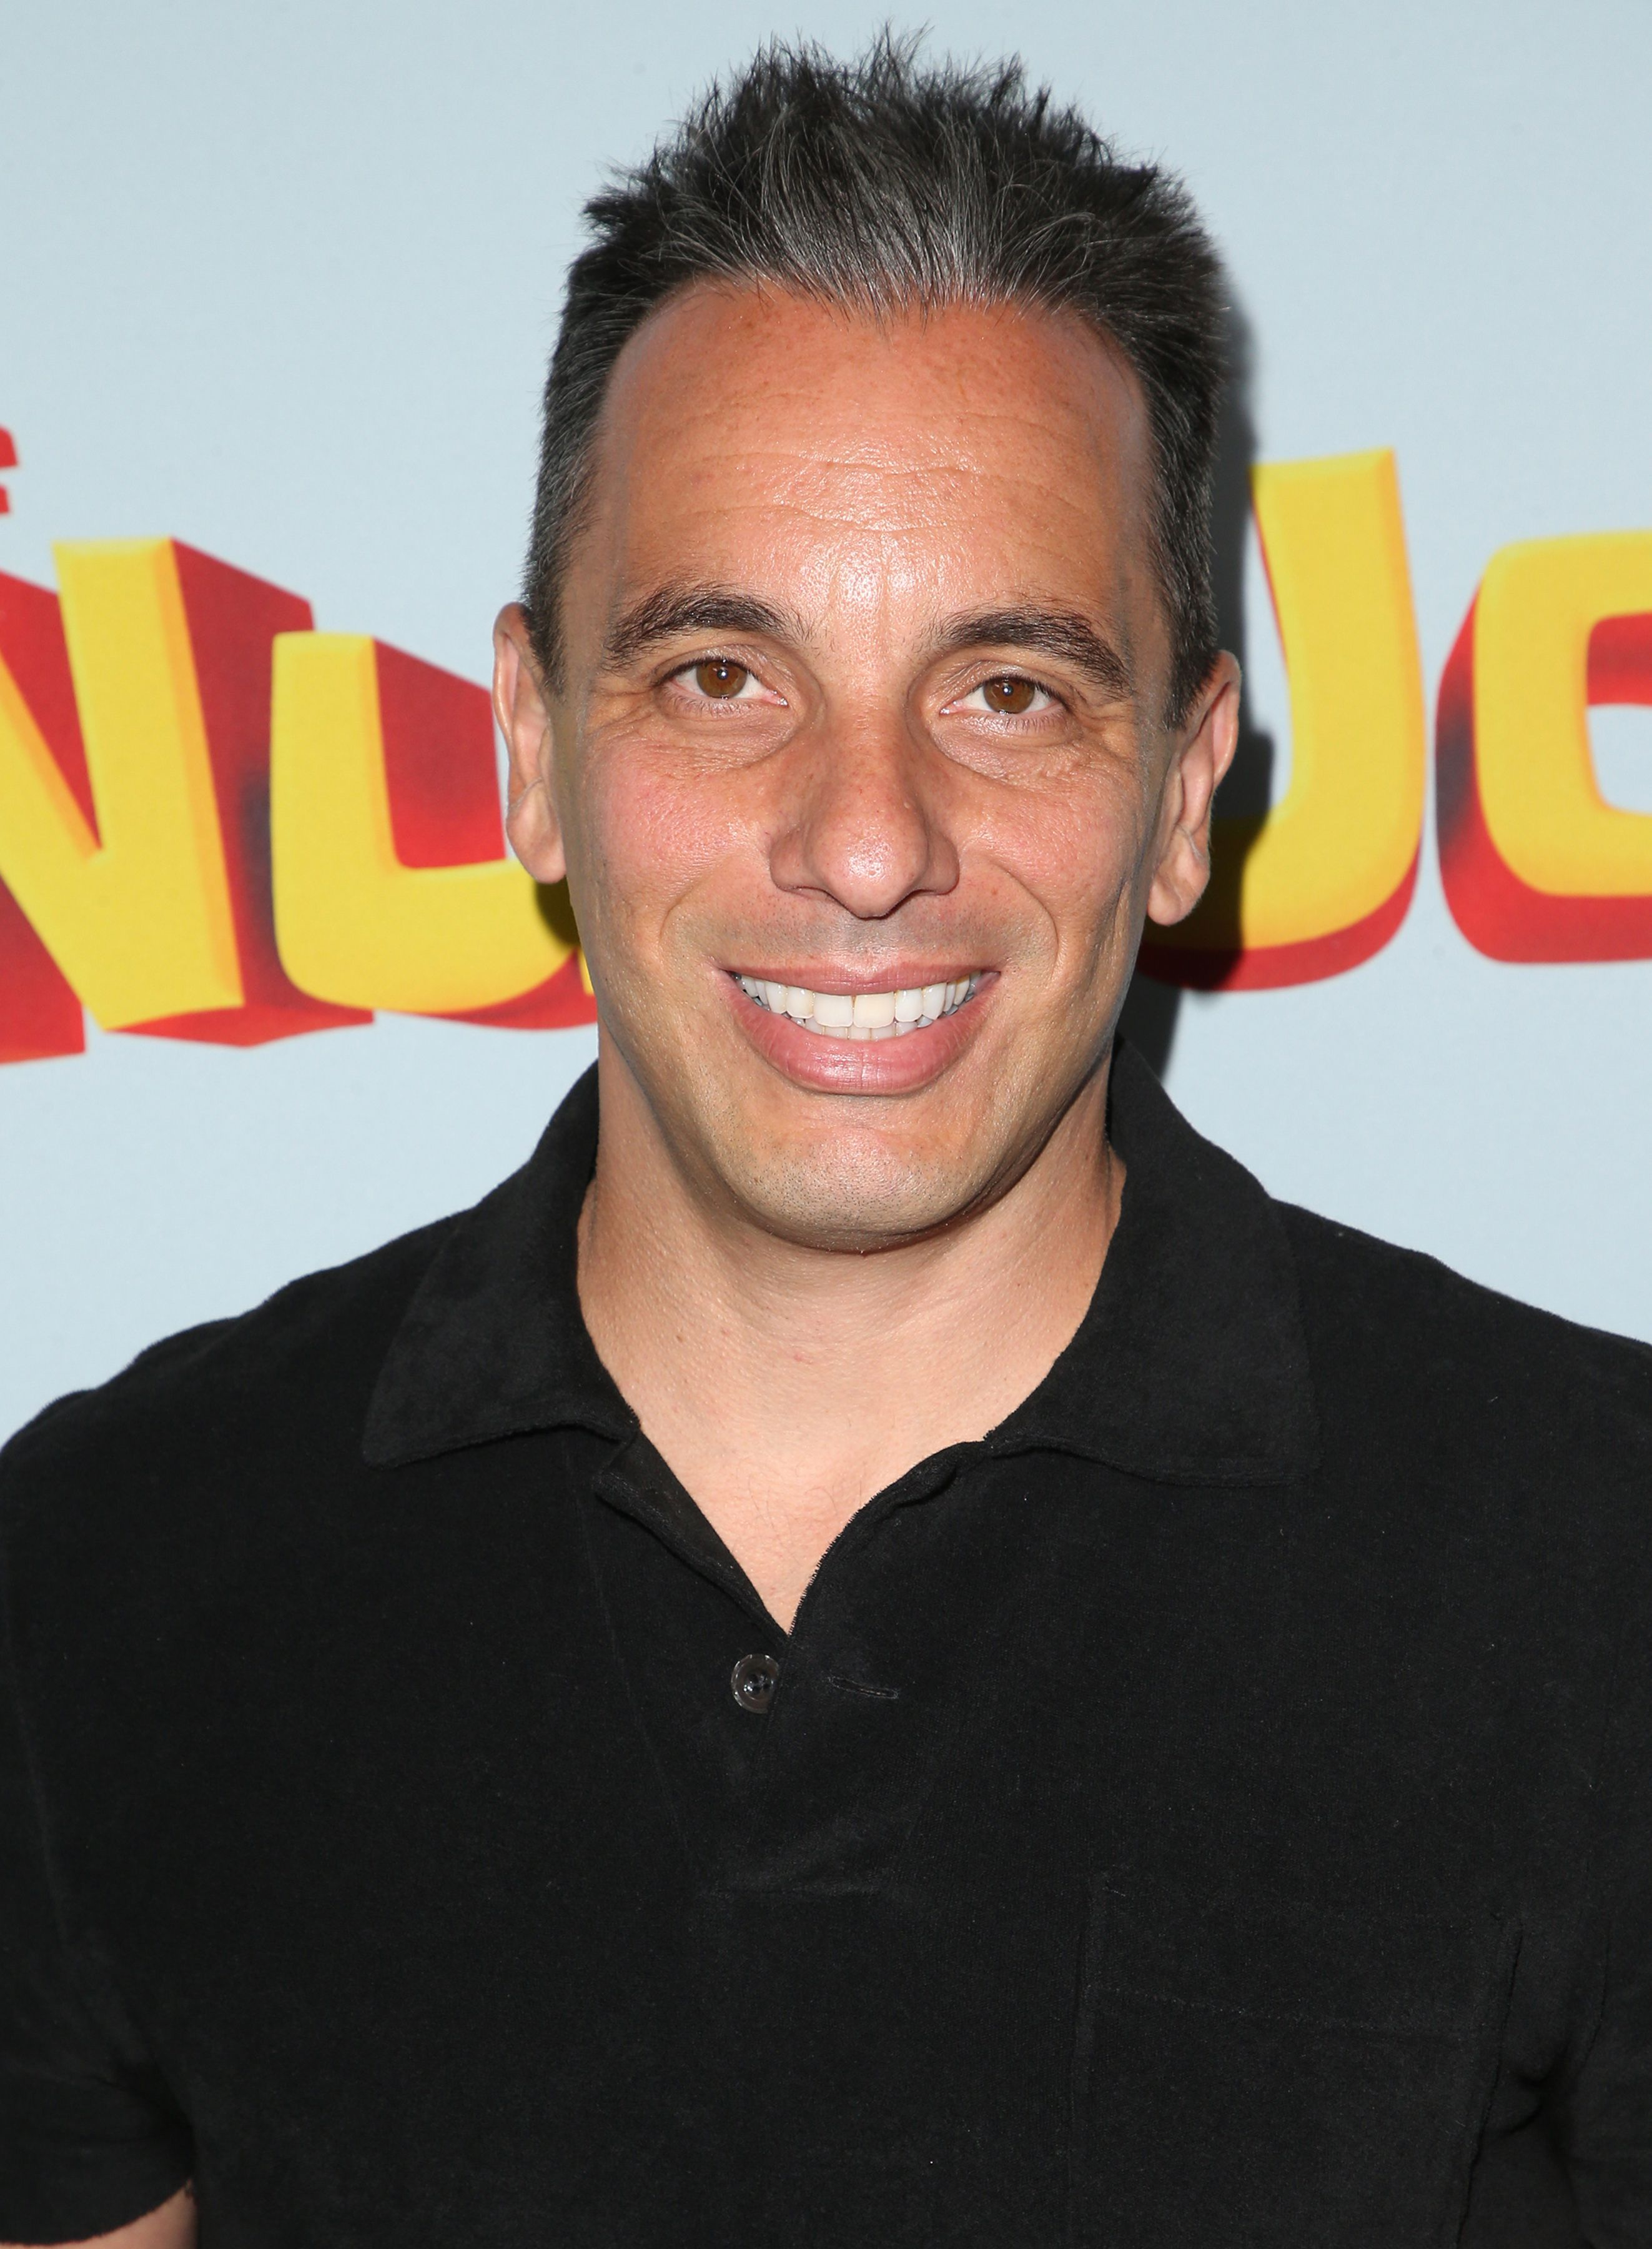 The 47-year old son of father (?) and mother(?) Sebastian Maniscalco in 2020 photo. Sebastian Maniscalco earned a  million dollar salary - leaving the net worth at  million in 2020